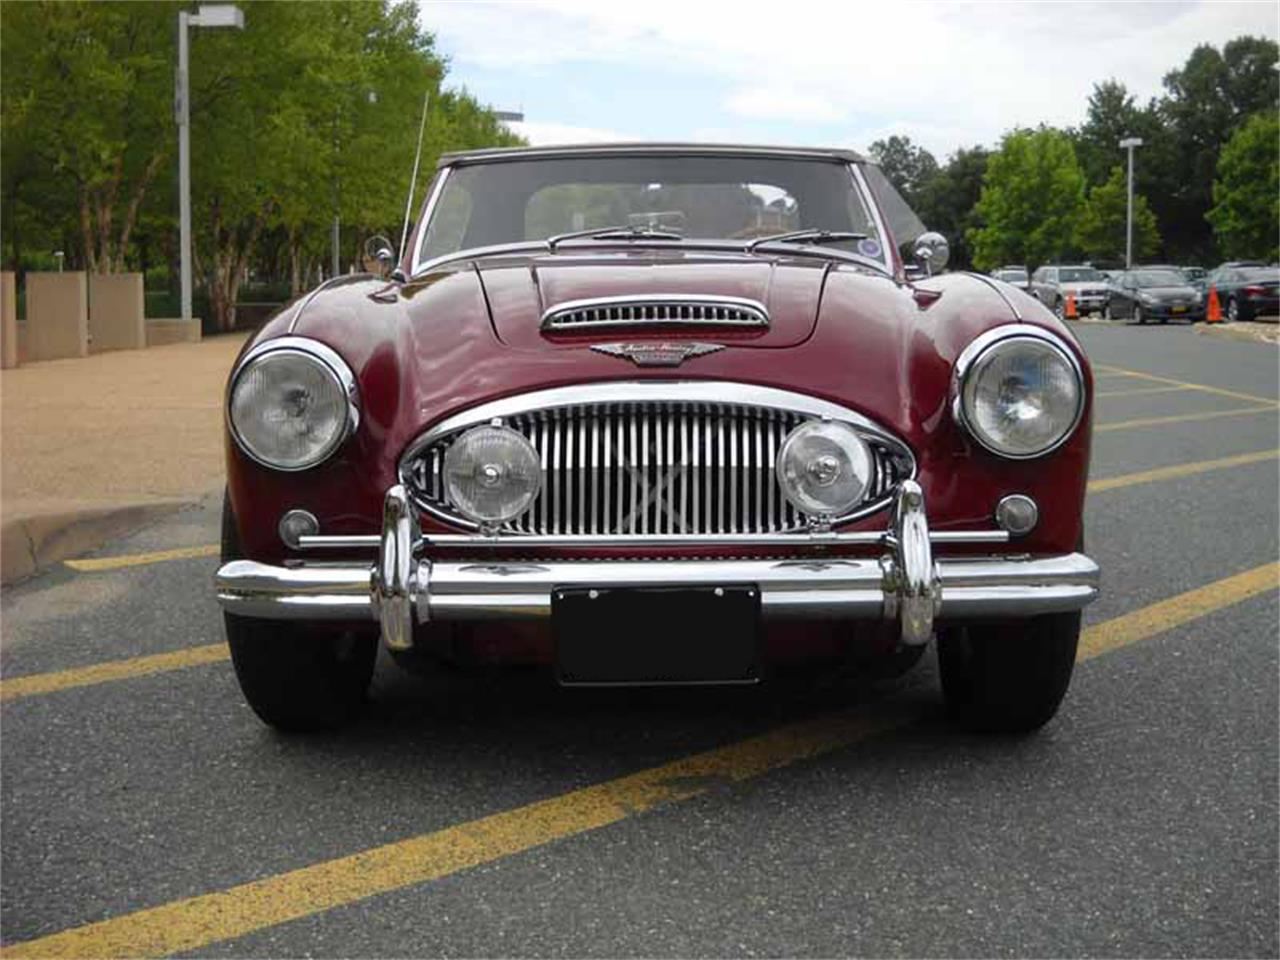 Large Picture of Classic 1962 Austin-Healey 3000 Mk I BT7 located in WAYNESBORO Virginia Offered by Gassman Automotive - JFK9